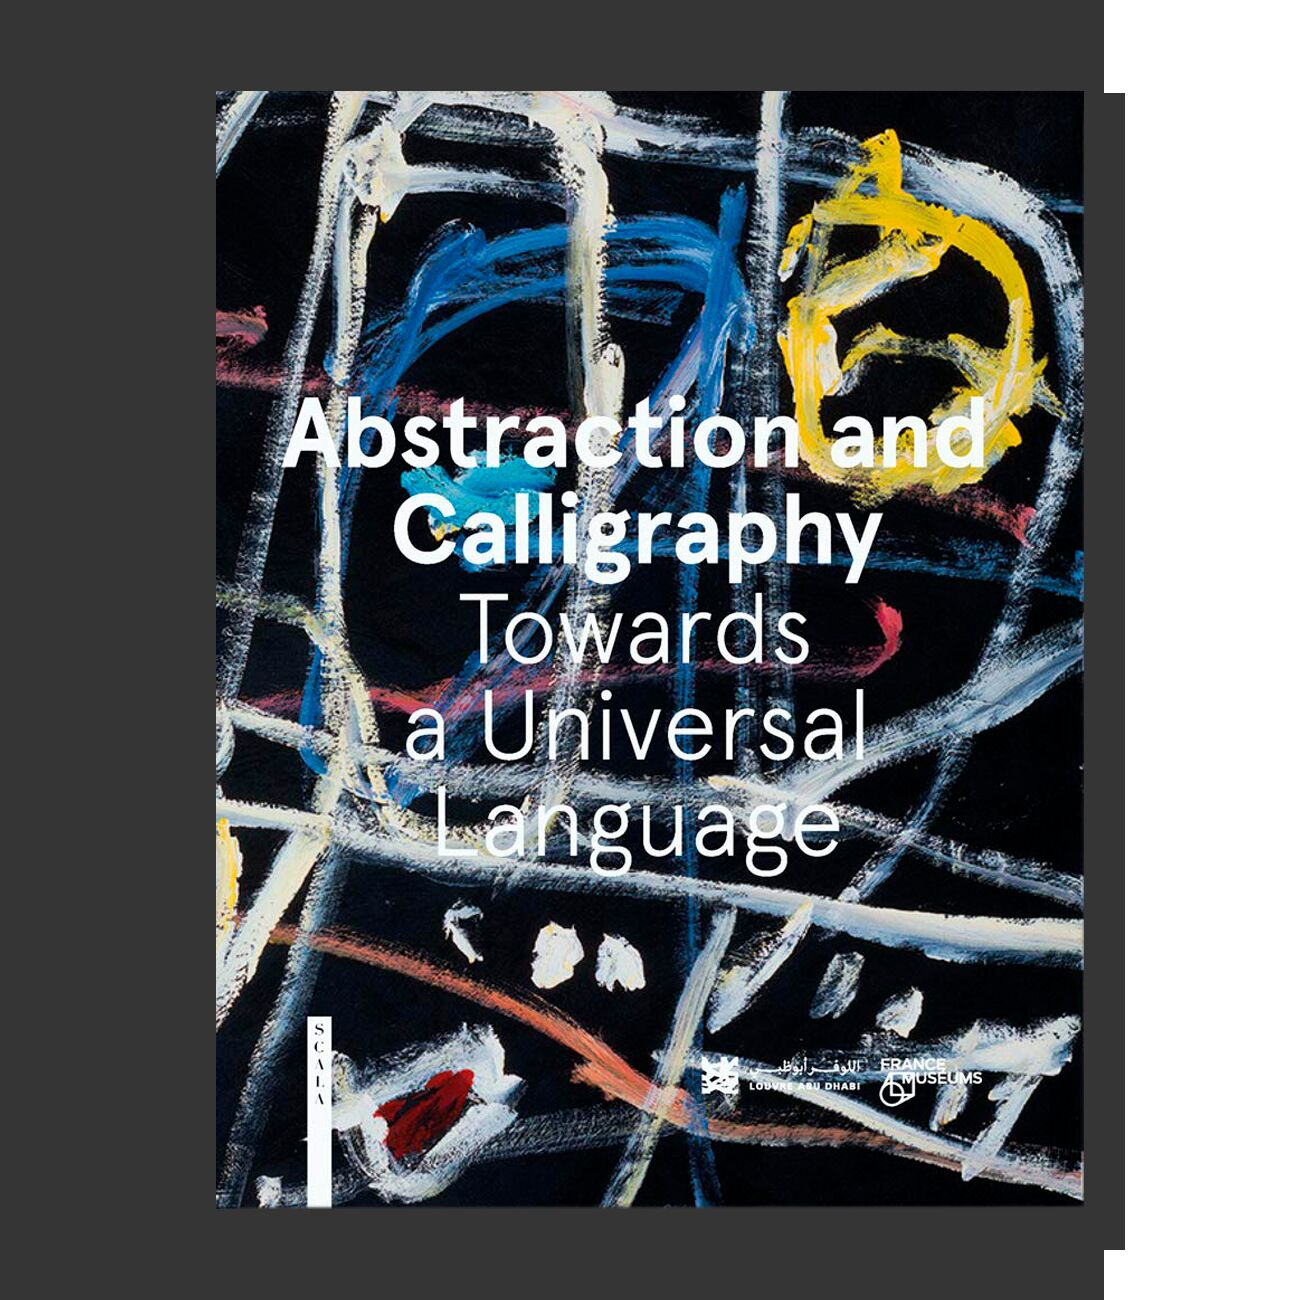 Abstraction and Calligraphy: Towards a Universal Language